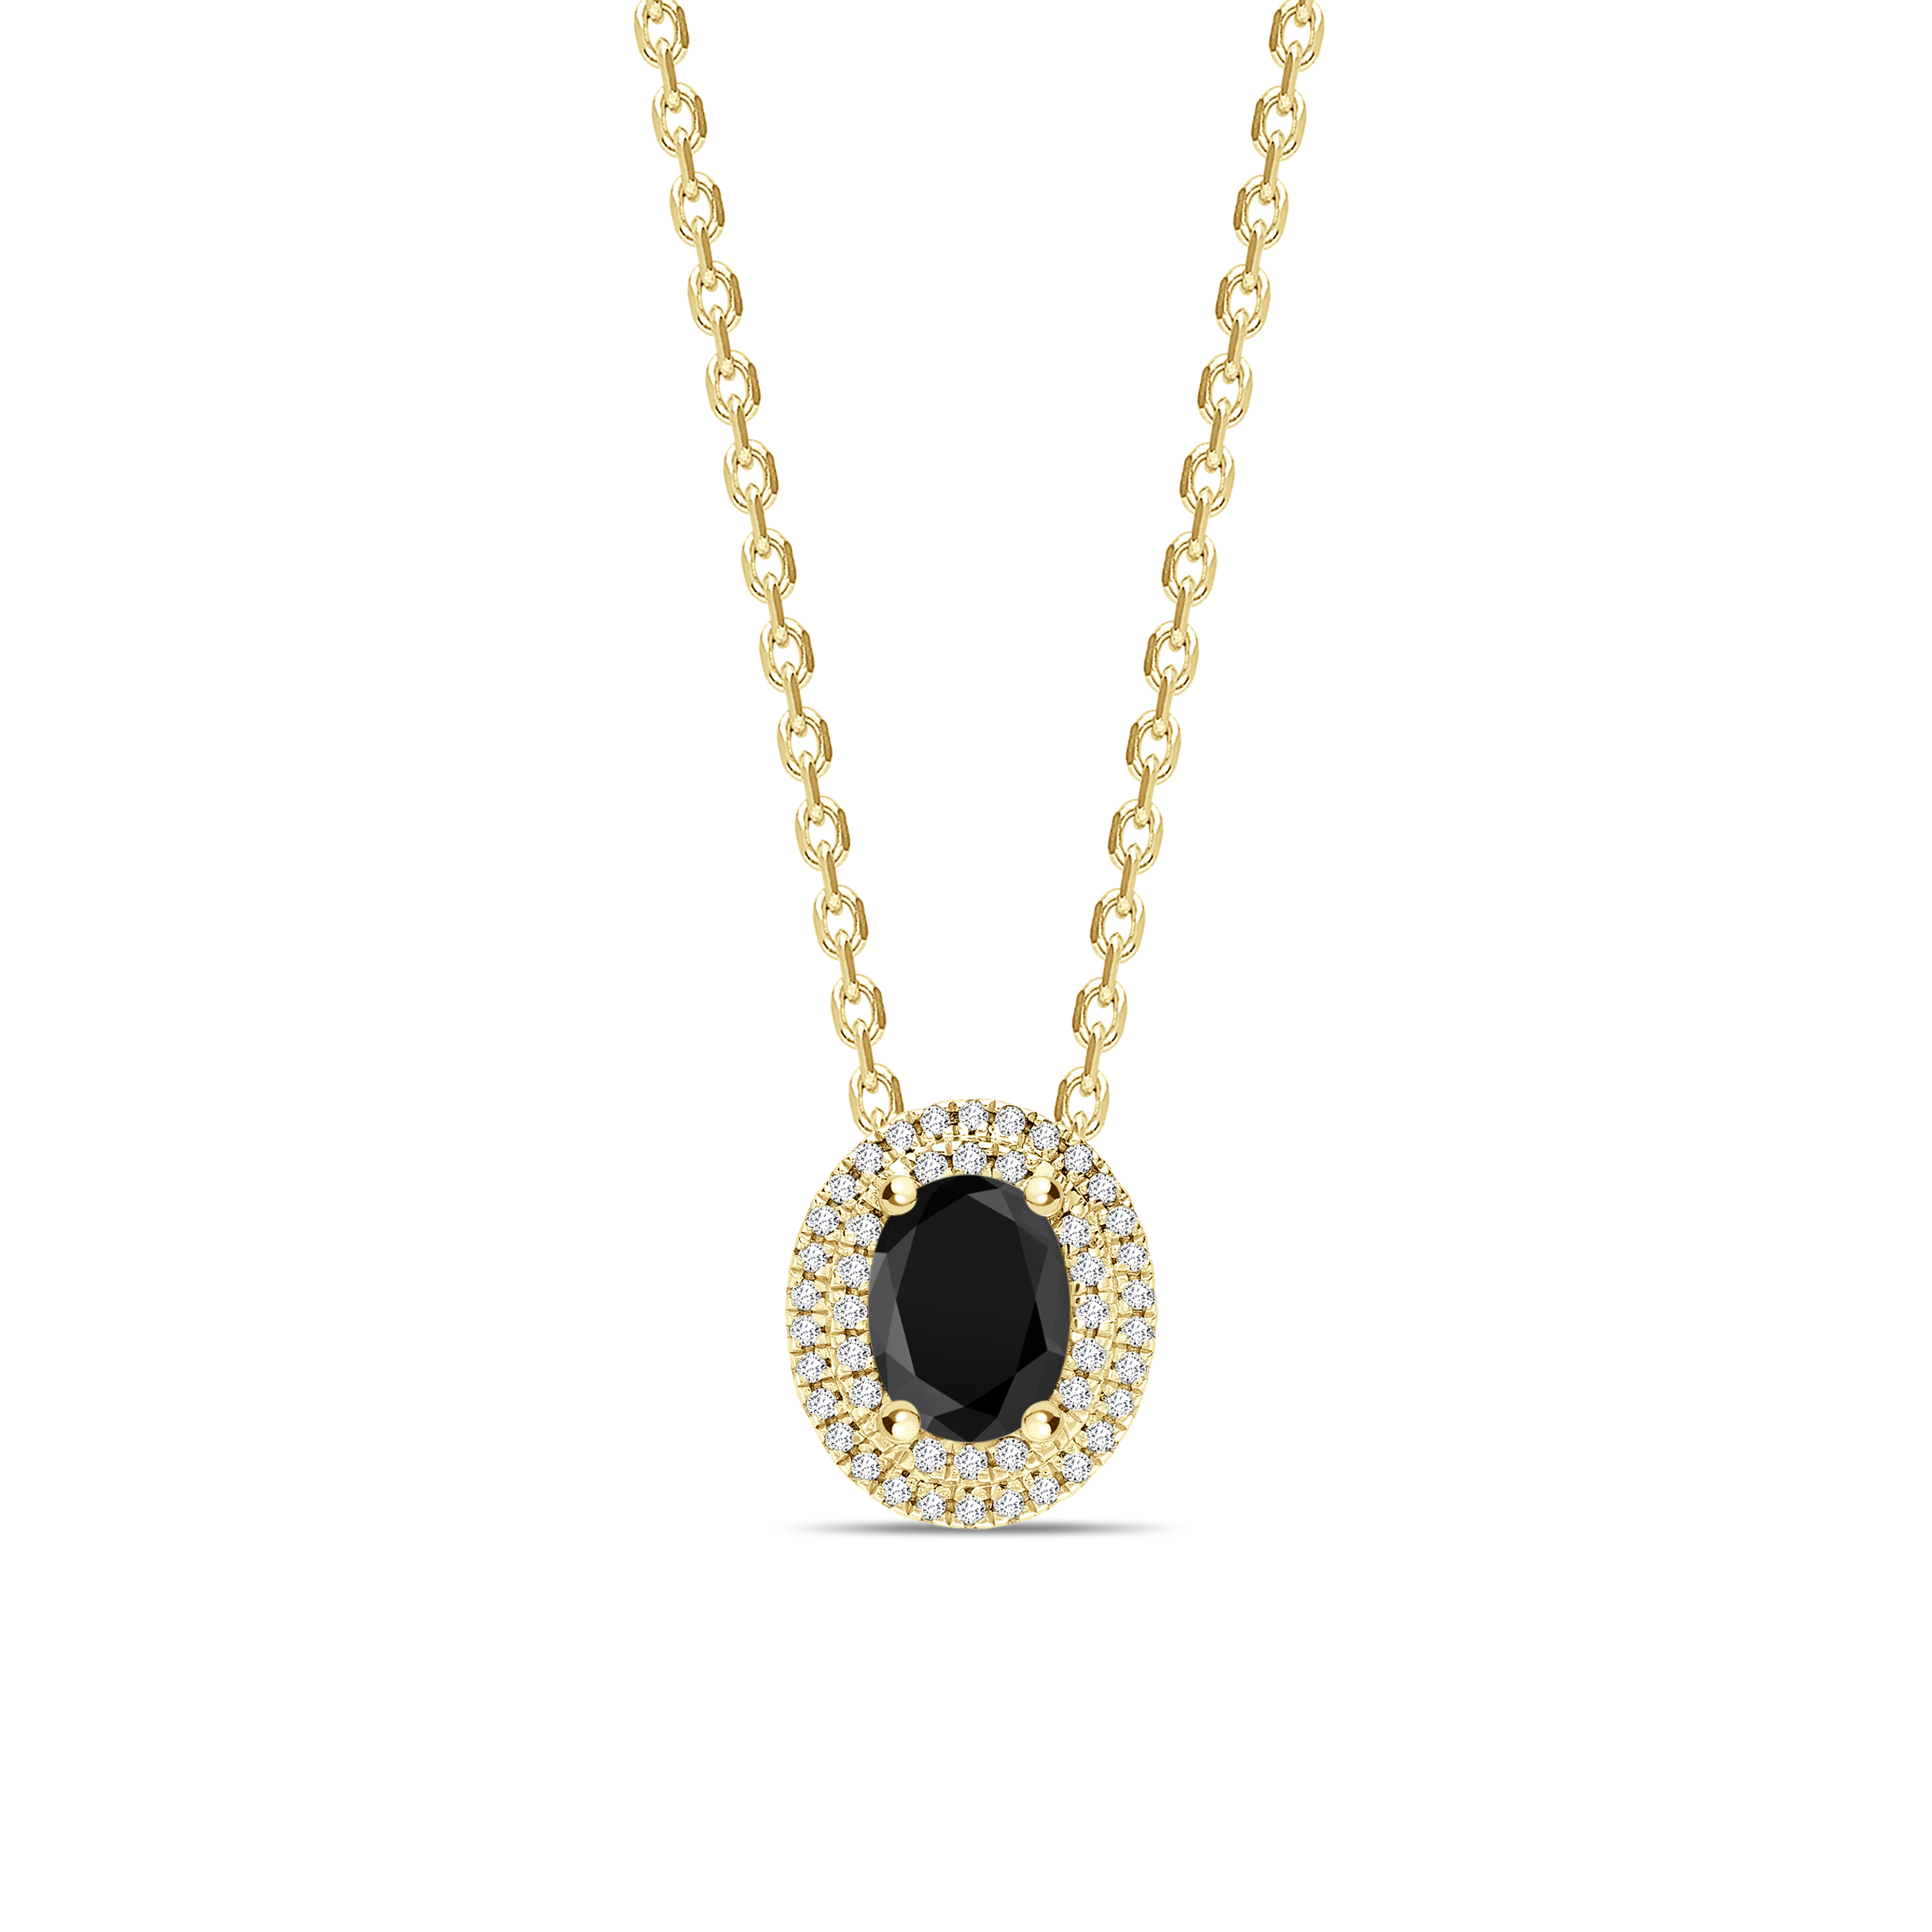 Oval Cut Halo Style Black Diamond Solitaire Pendants Necklace